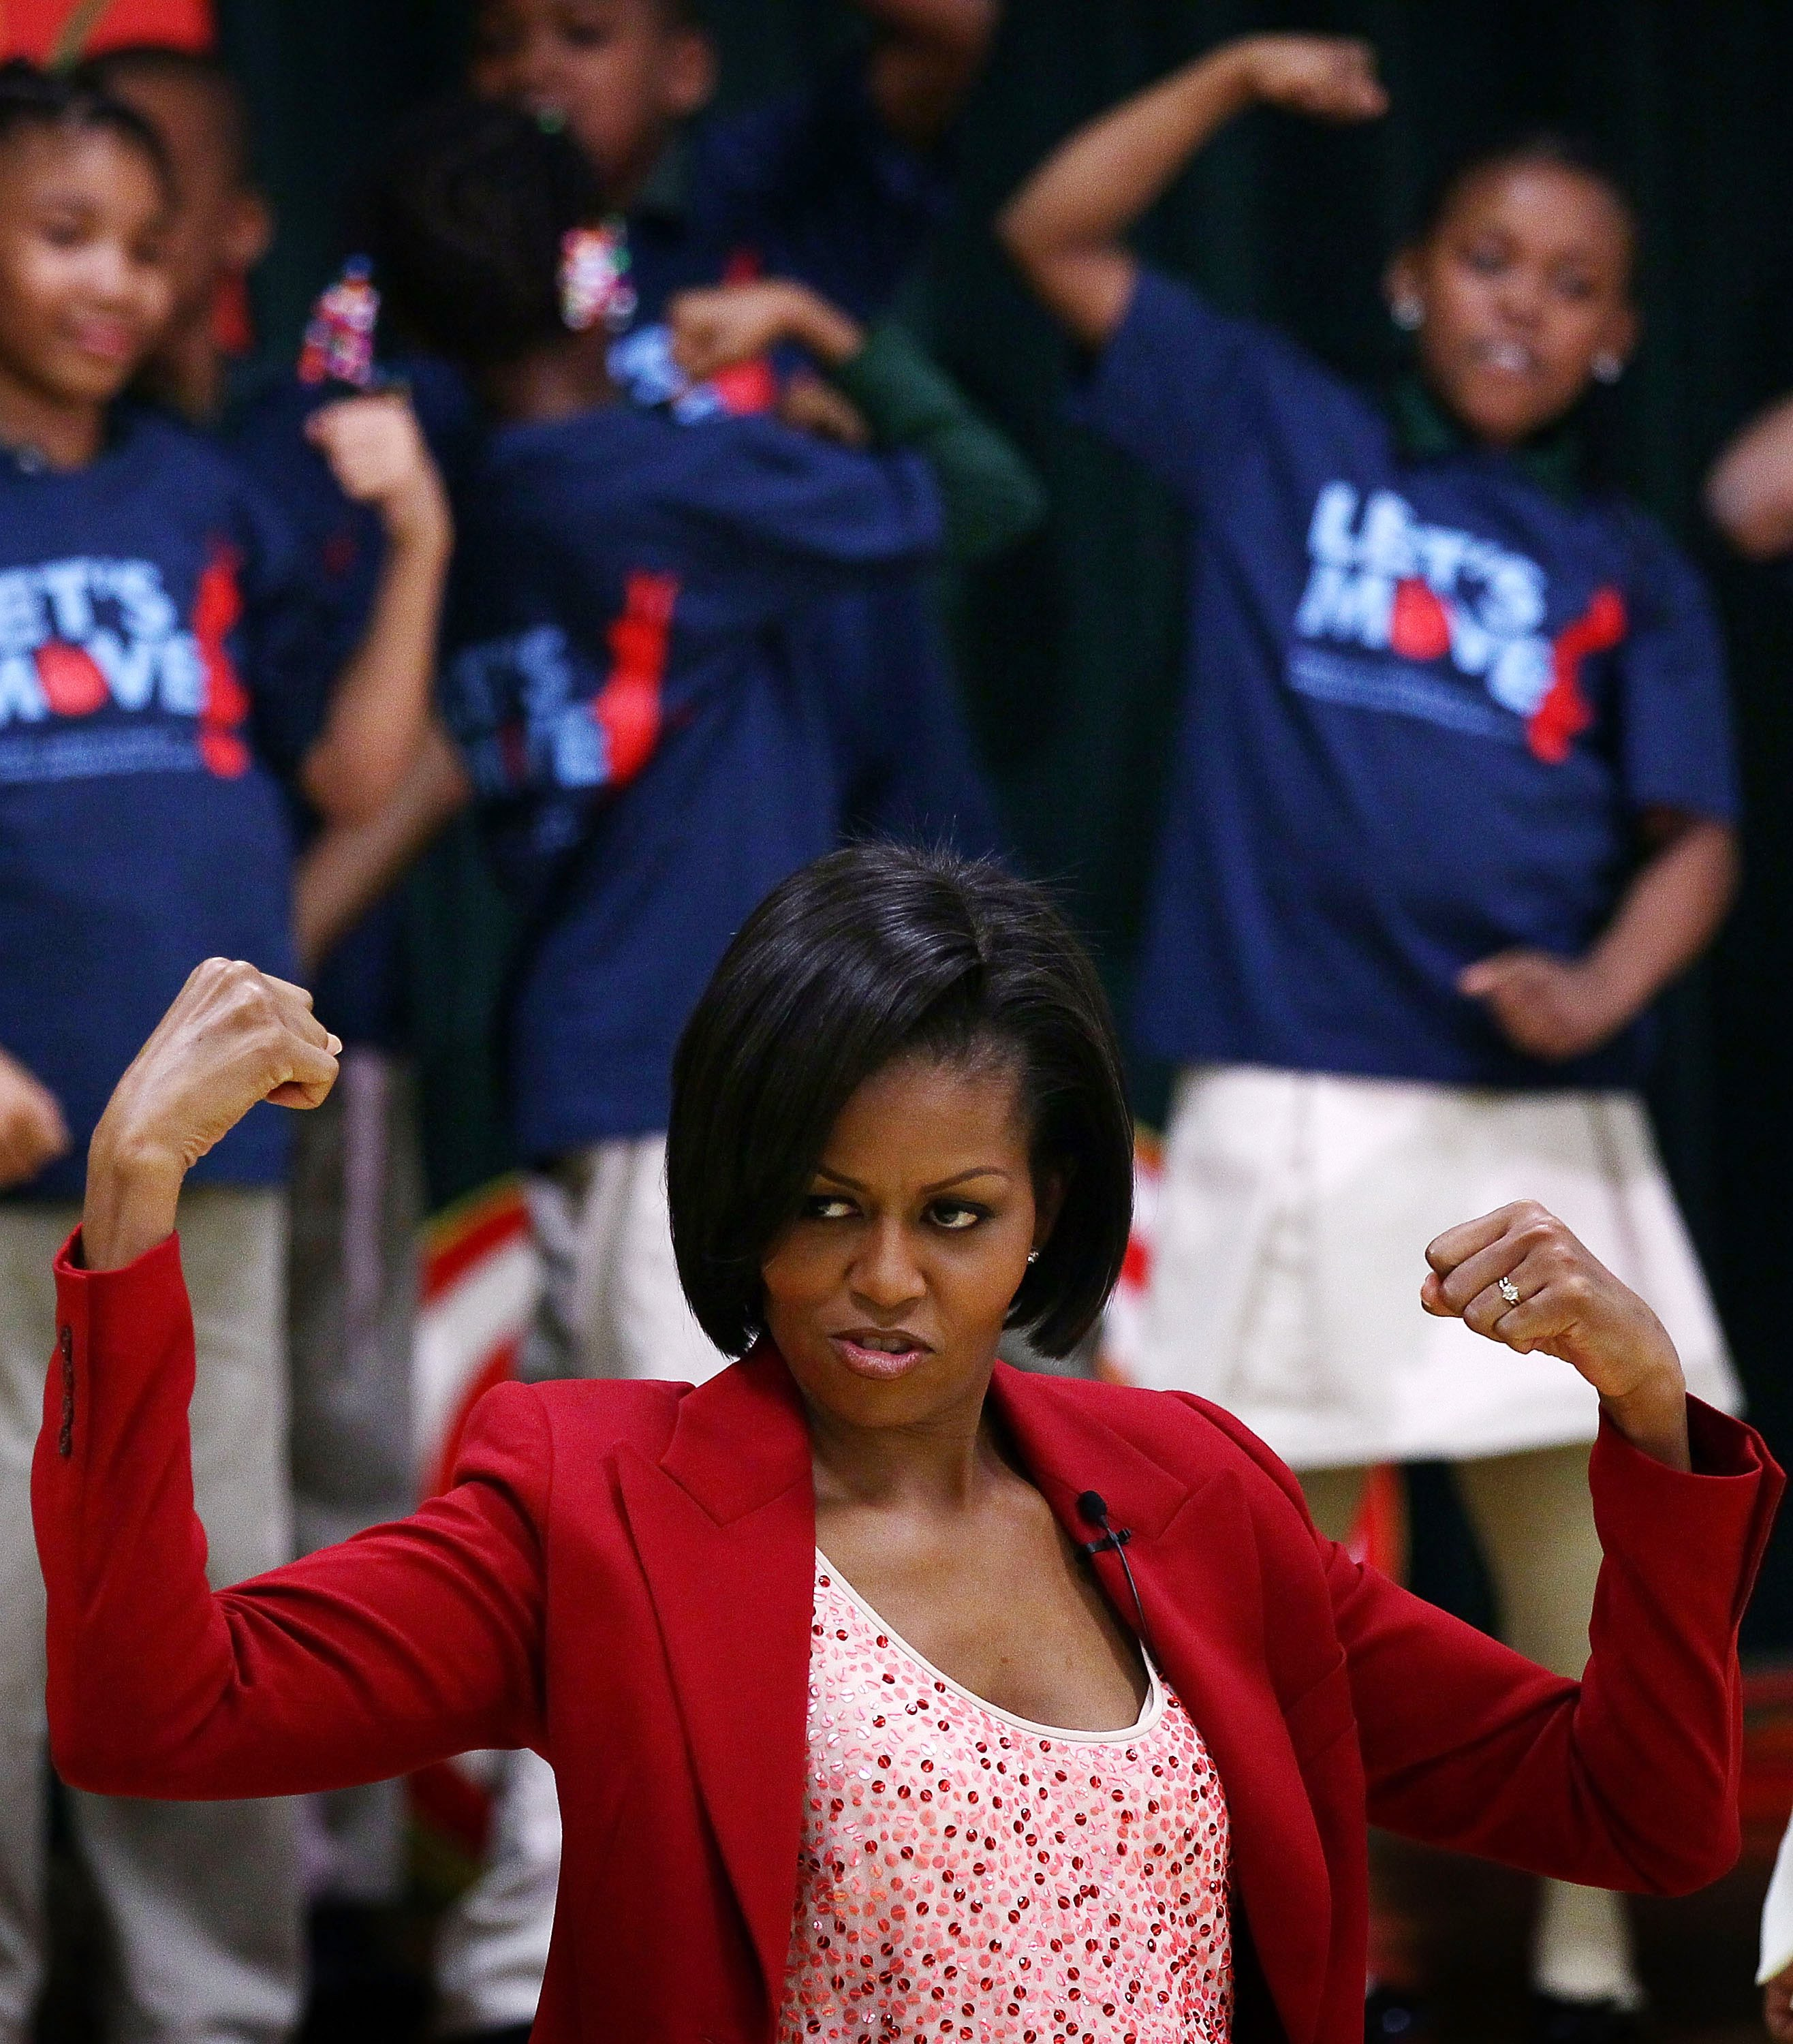 "WASHINGTON - APRIL 21: U.S. first lady Michelle Obama flexes her muscles as she exercises with schoolchildren at the River Terrace School April 21, 2010 in Washington, DC. Mrs. Obama visited the school to highlight physical activity as a critical element of the ""Let's Move!"" initiative with several Olympians and Paralympians, including 2010 Olympians Shani Davis and Hannah Kearney and 2010 Paralympians Alana Nichols and Heath Calhoun. (Photo by Win McNamee/Getty Images)"